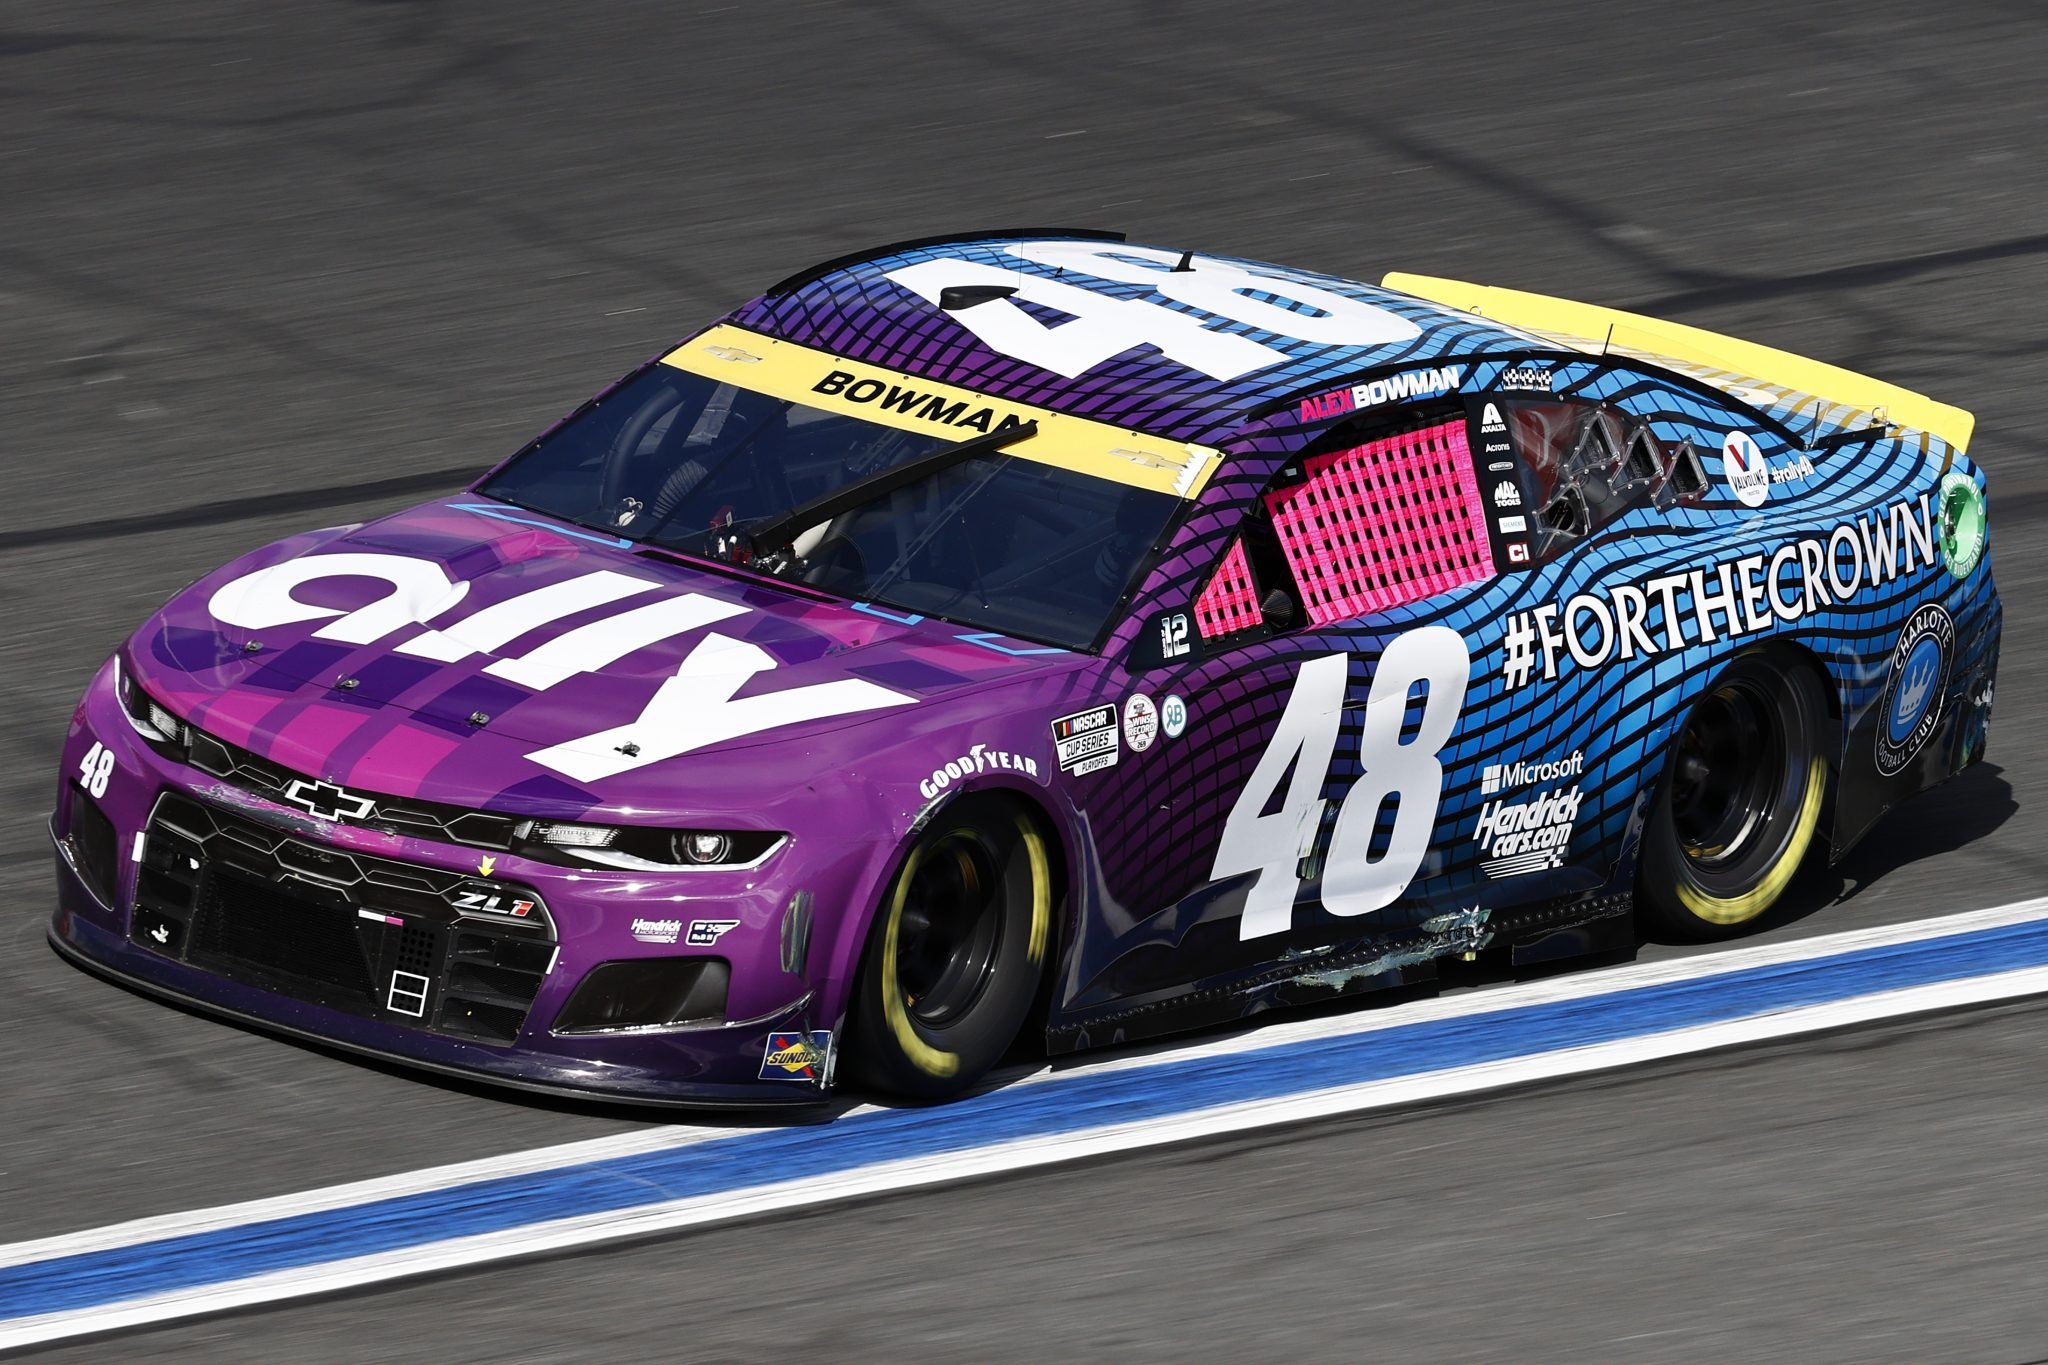 CONCORD, NORTH CAROLINA - OCTOBER 10: Alex Bowman, driver of the #48 Ally x Charlotte FC Chevrolet, drives during the NASCAR Cup Series Bank of America ROVAL 400 at Charlotte Motor Speedway on October 10, 2021 in Concord, North Carolina. (Photo by Jared C. Tilton/Getty Images) | Getty Images